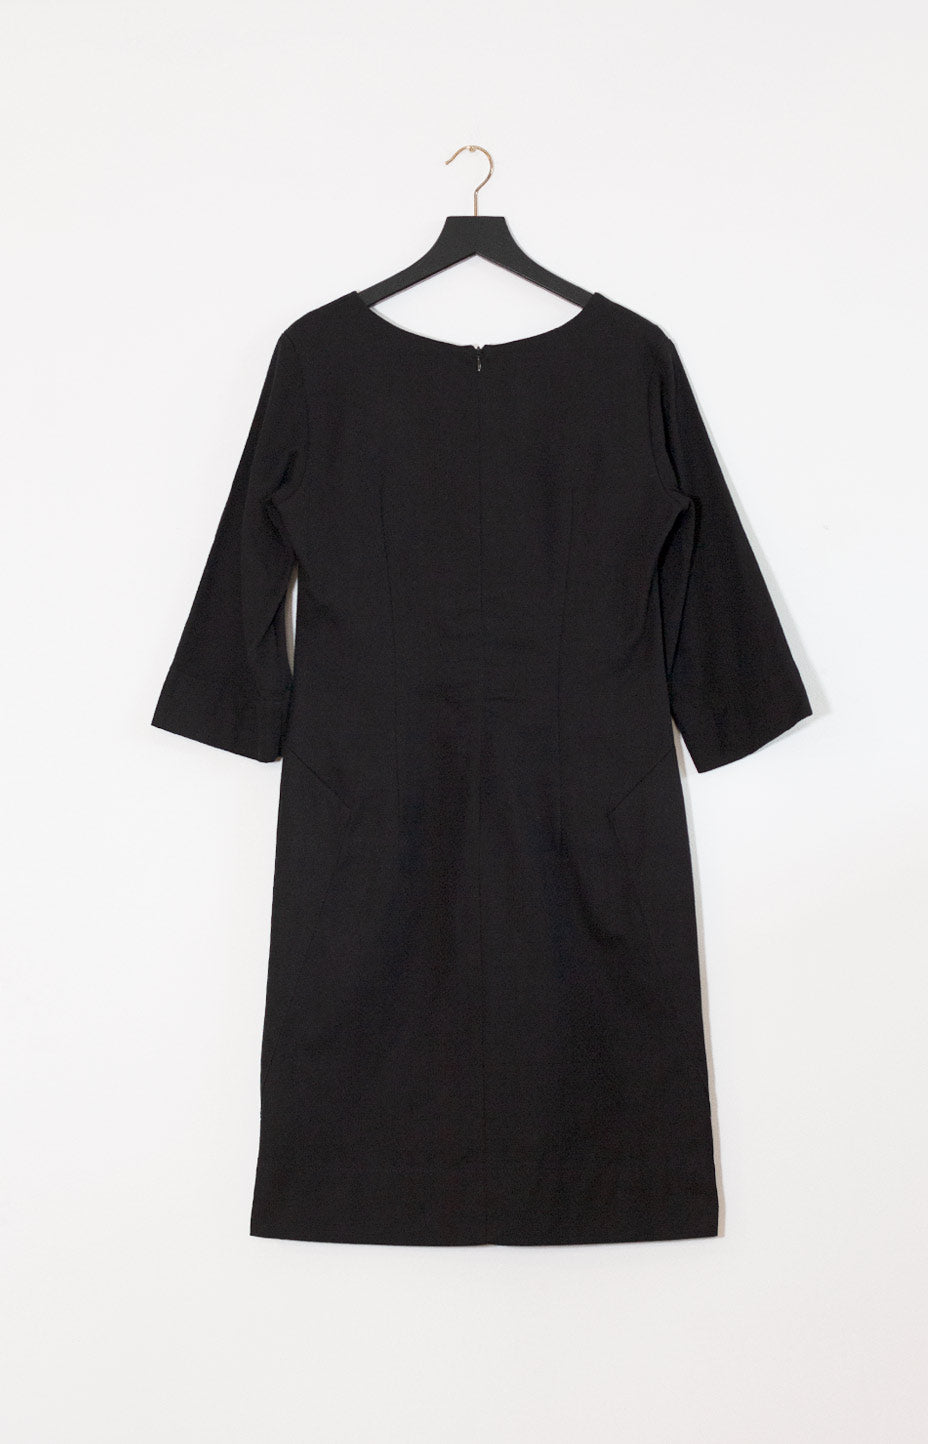 Kinship Kotelo dress coal black S - - TAUKO - TAUKODESIGN